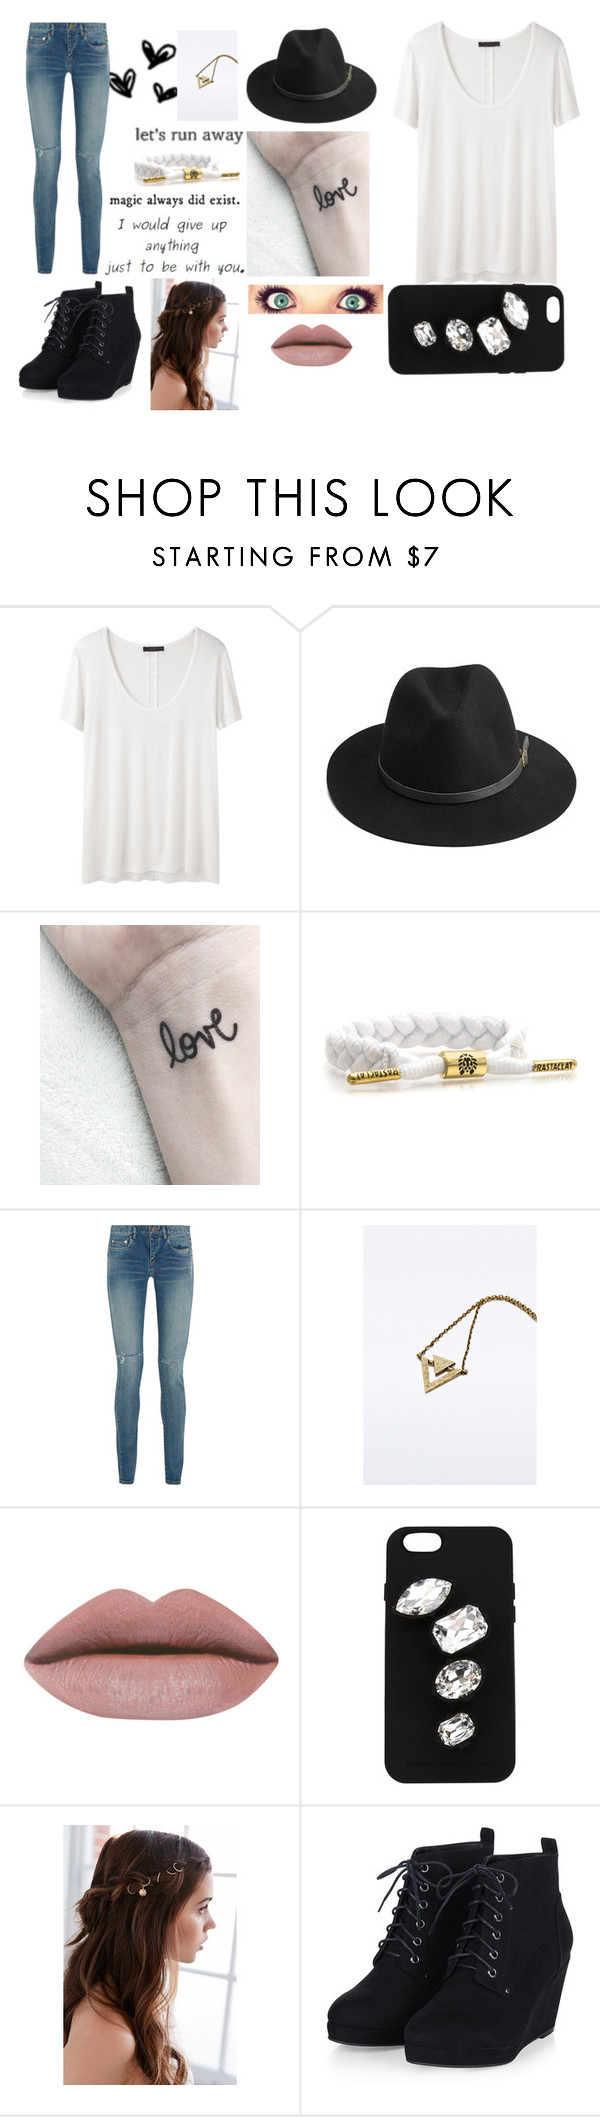 """""""Anything, for you"""" by troylerzalfie on Polyvore featuring The Row, BeckSöndergaard, Yves Saint Laurent, STELLA McCARTNEY, Regal Rose and thanksdylan"""